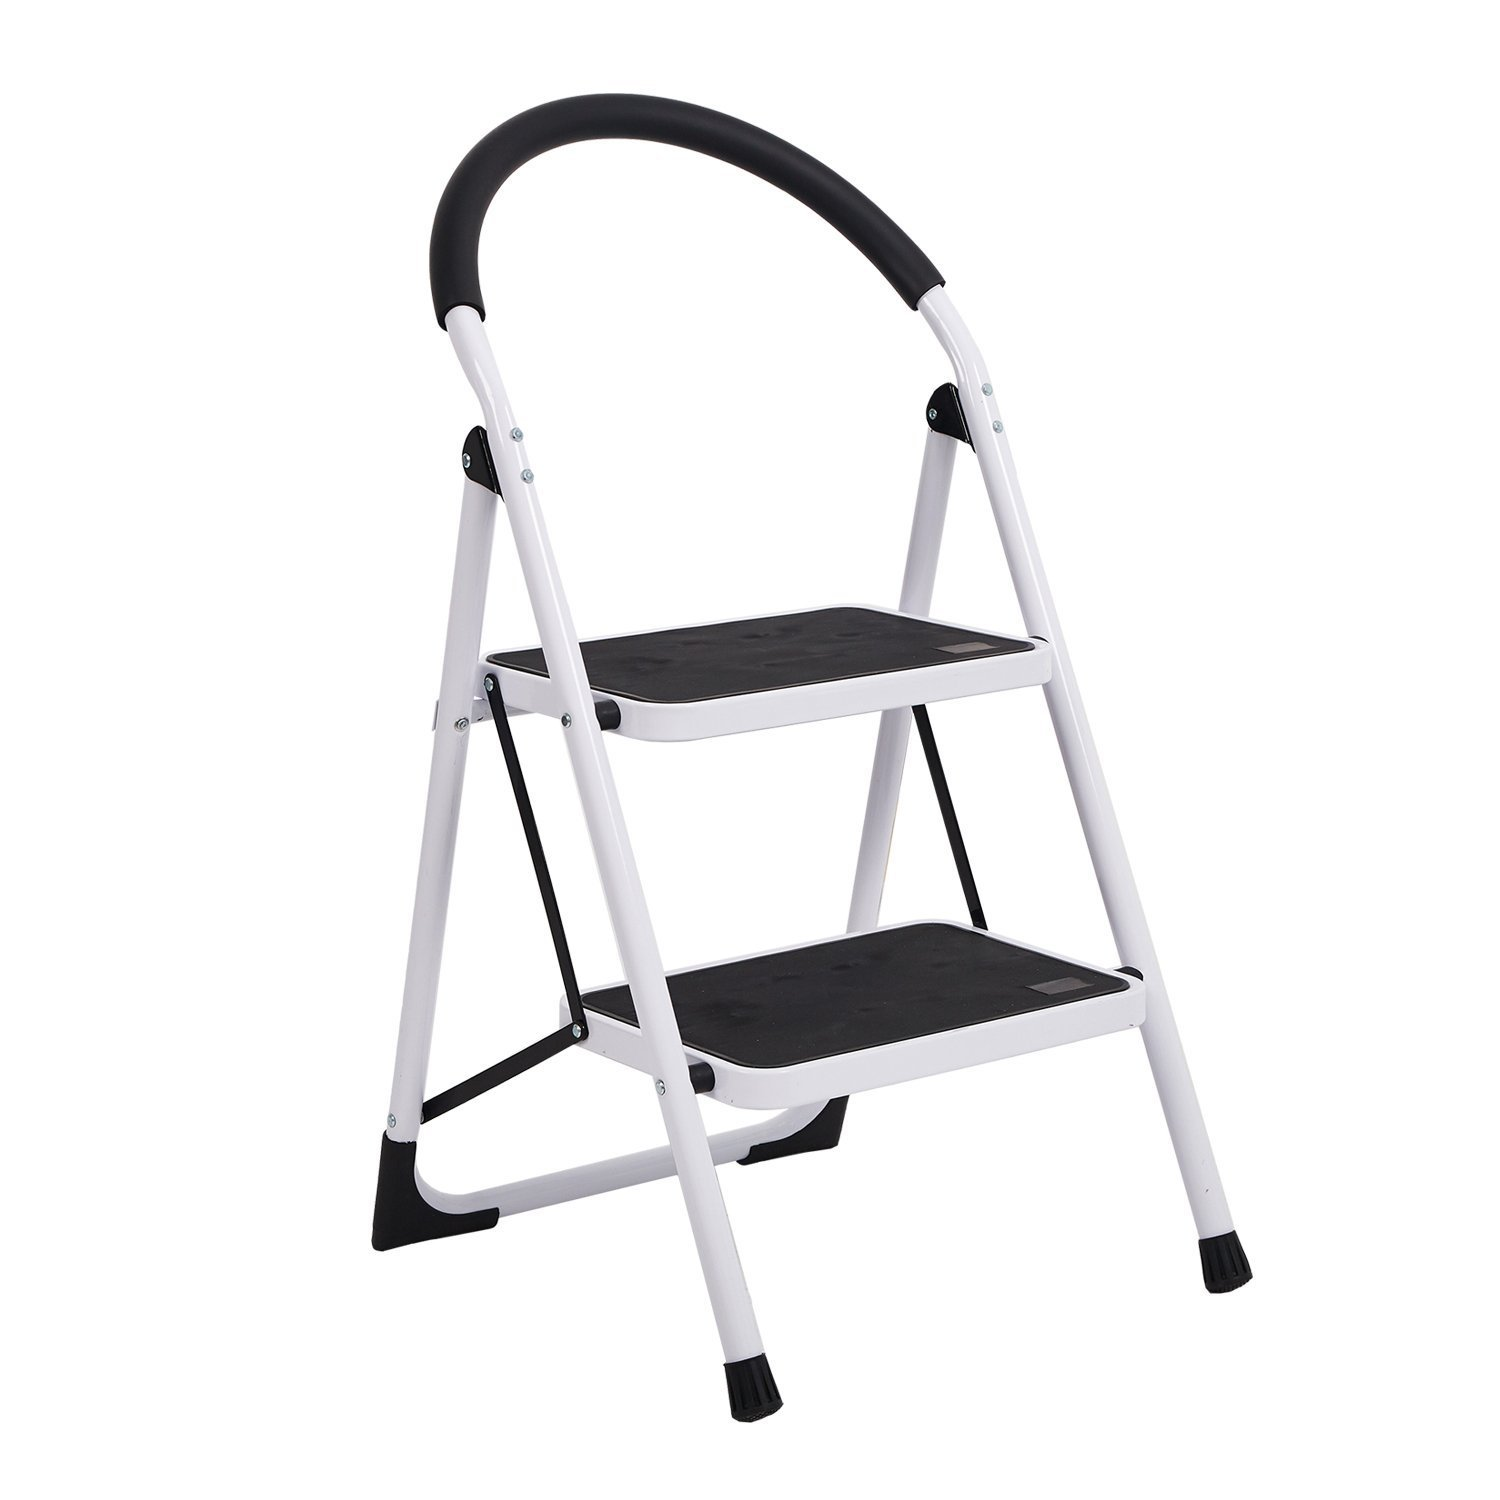 KARMAS PRODUCT Folding 4 Step Ladder with Handrails for Home,Anti-Slip Safty Steel Step Stool 300LB by KARMAS PRODUCT (Image #2)